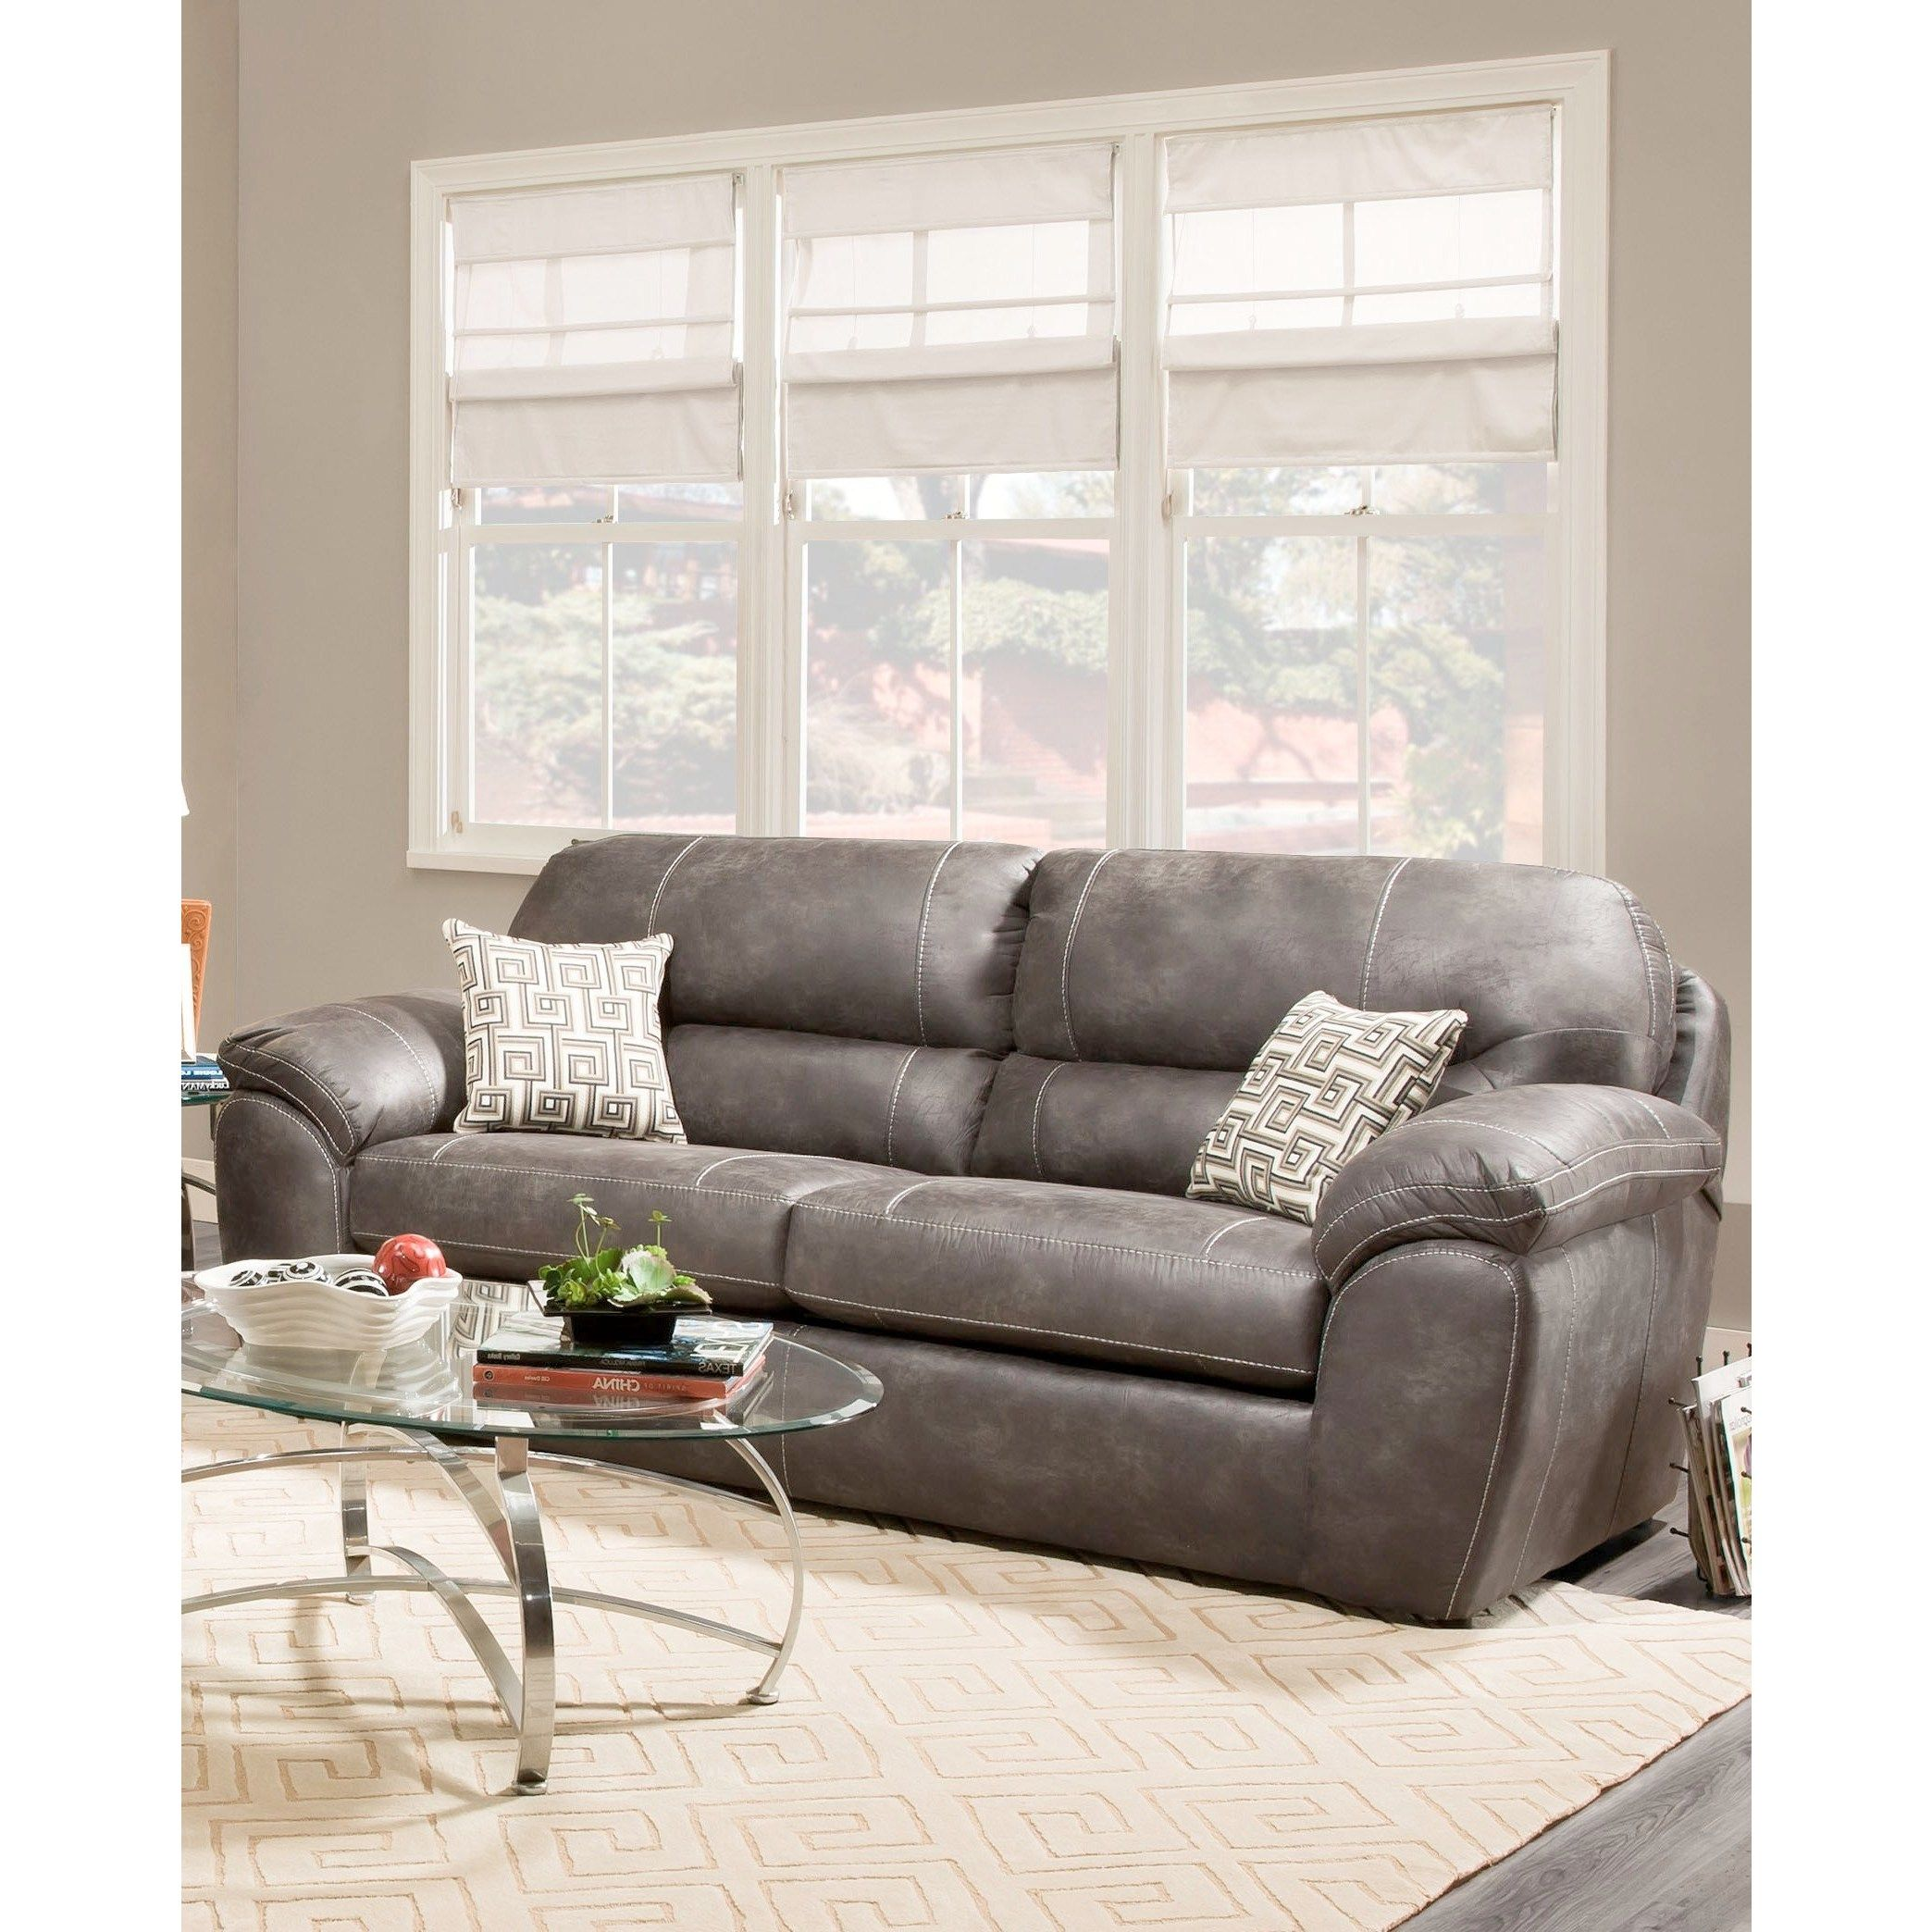 Sofa Trendz Albert Grey Microfiber Sleeper Sofa (Albert Sleeper Sofa-Grey) (Fabric)